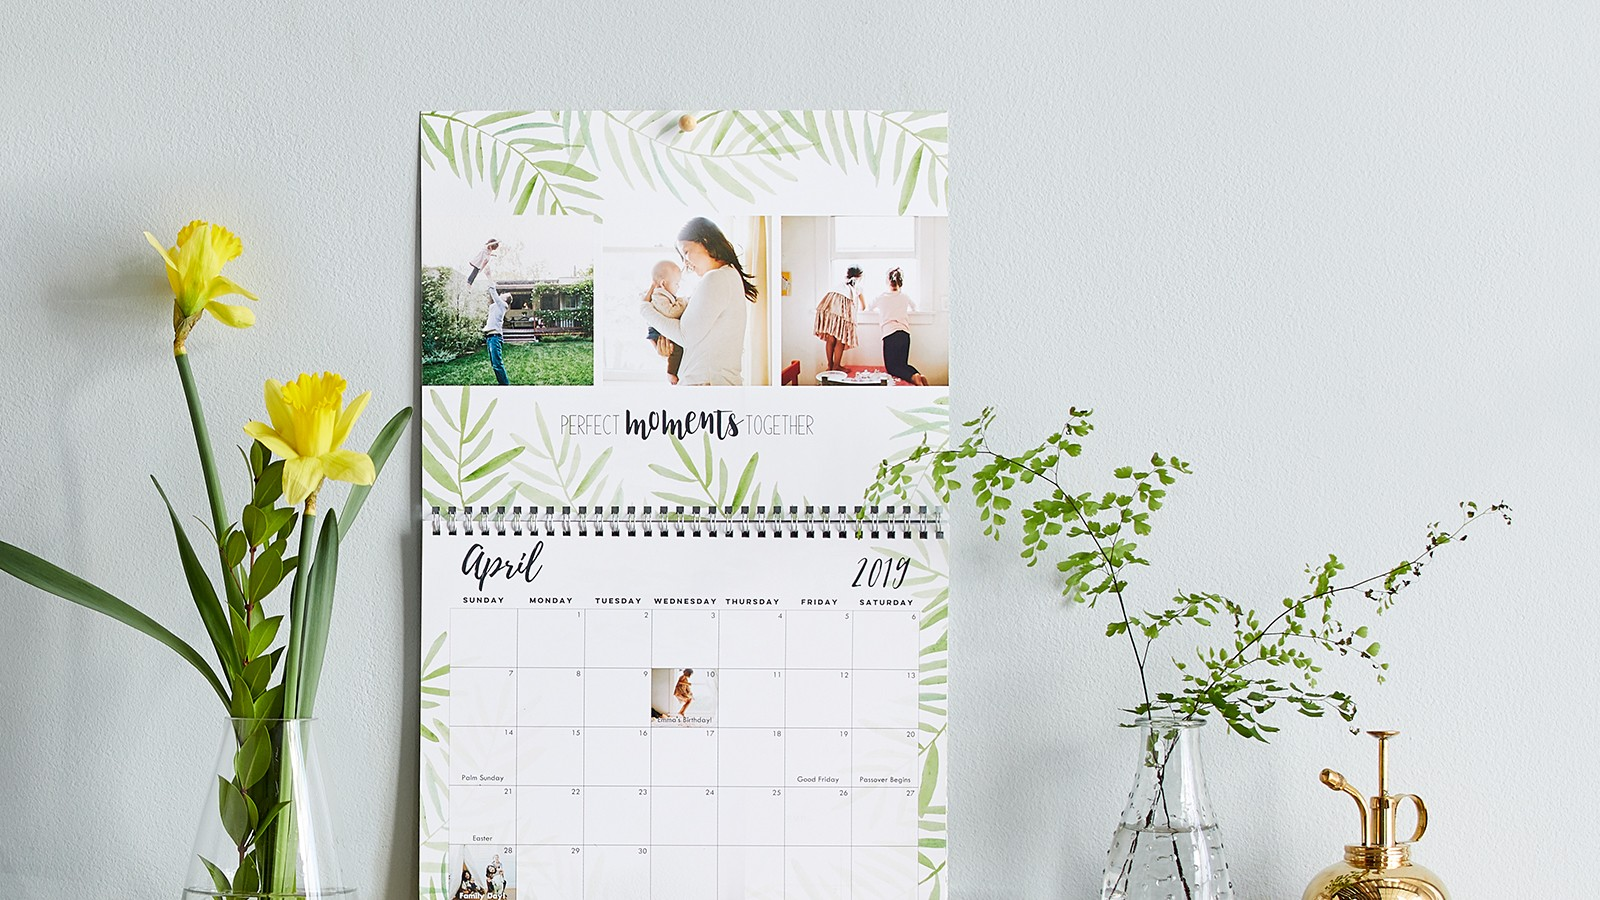 d837eedc Personalized 2019 Photo Calendars | Shutterfly